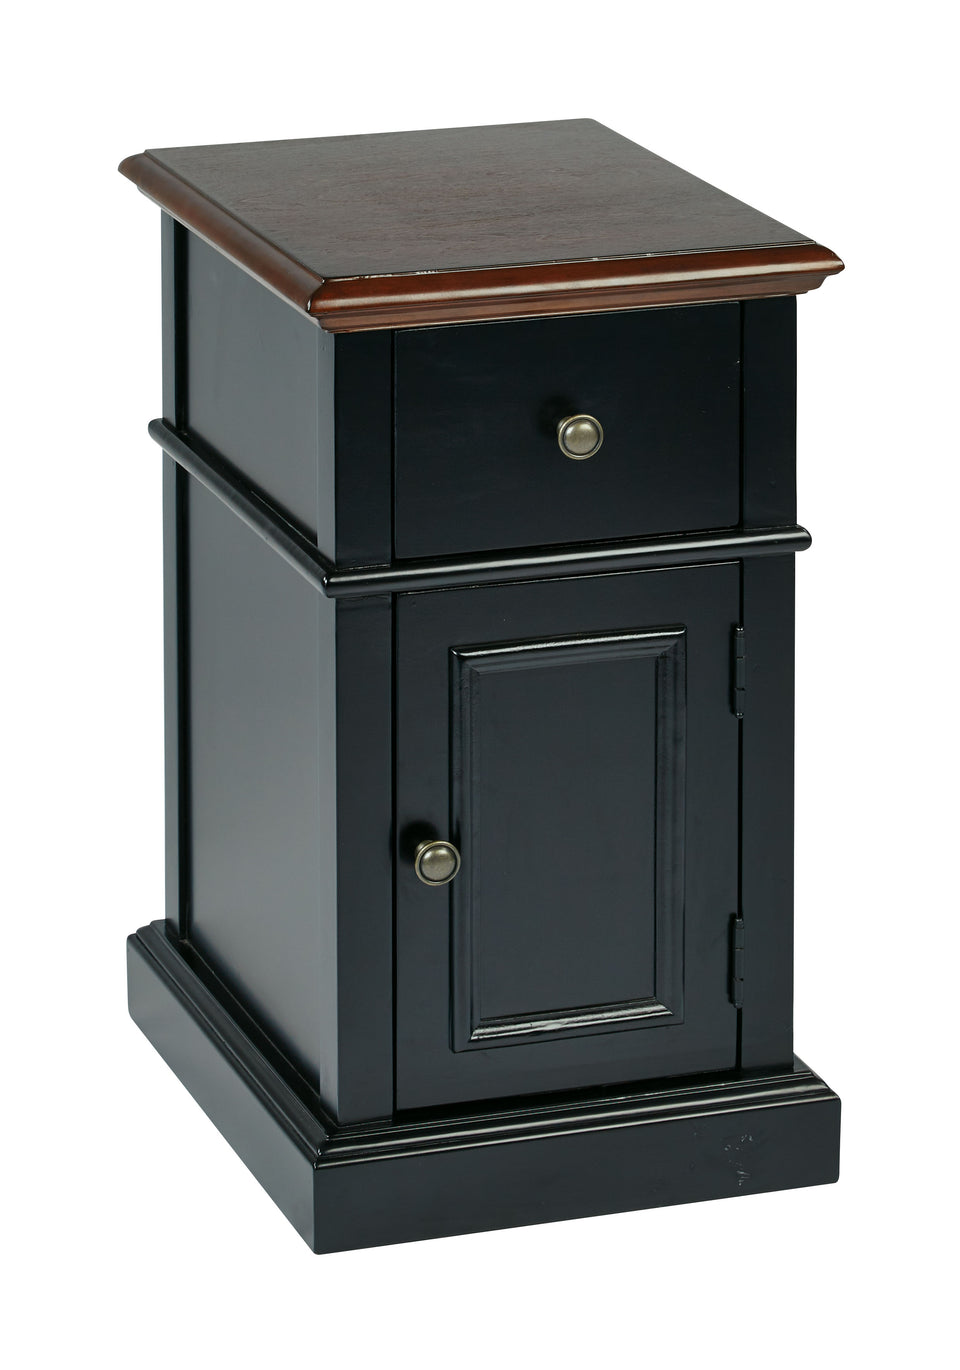 oxford two tone walnut and blalck side table with single drawer and door with metal knob closed